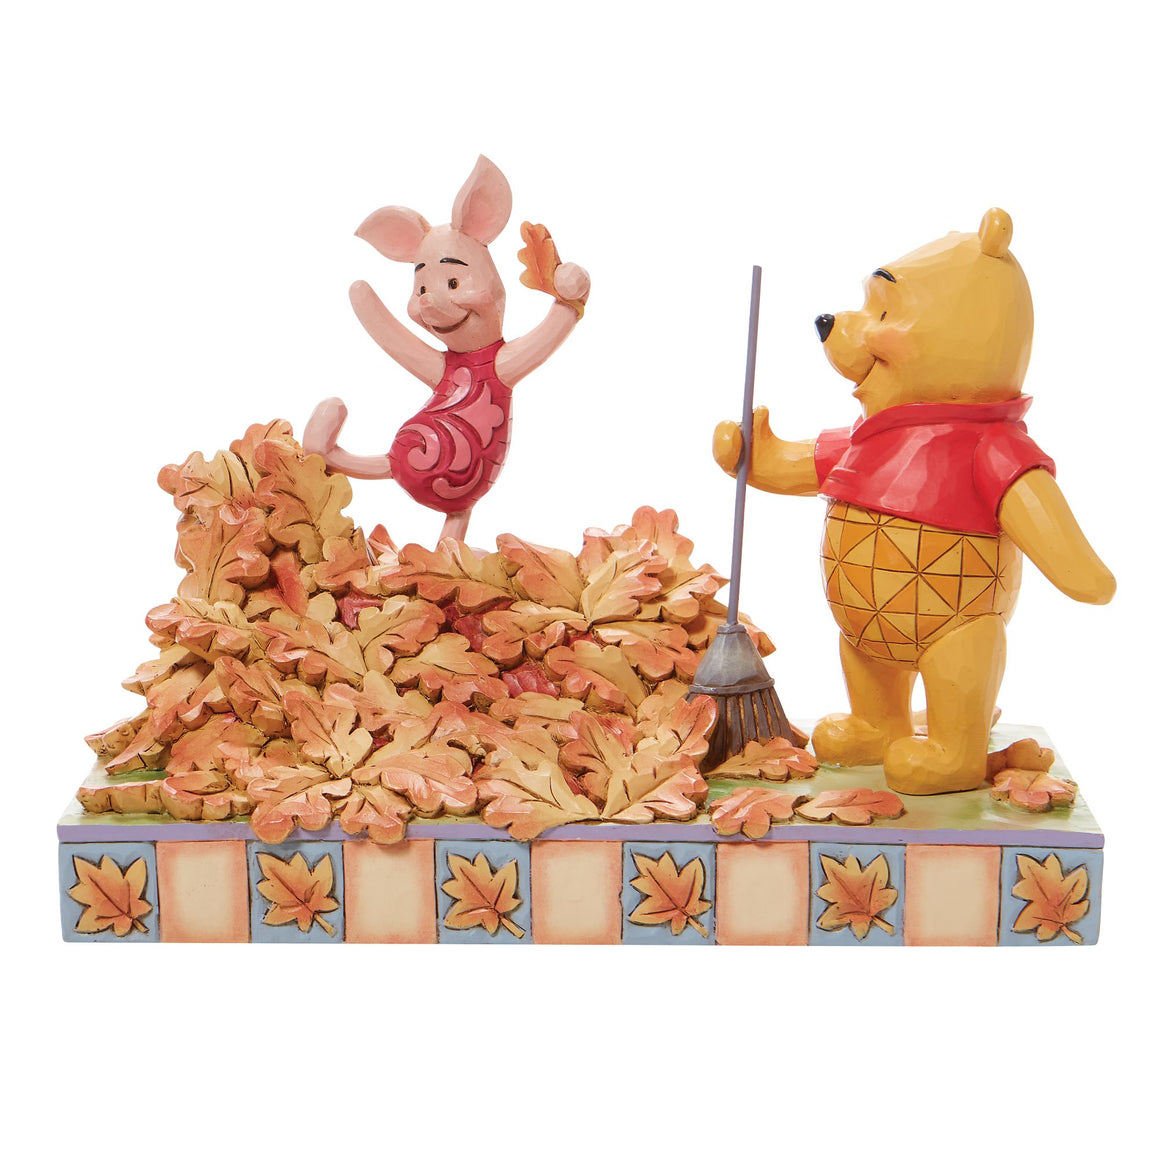 Jumping into Fall - Piglet and Pooh Autum Leaves Figurine- Disney Traditions by Jim Shore